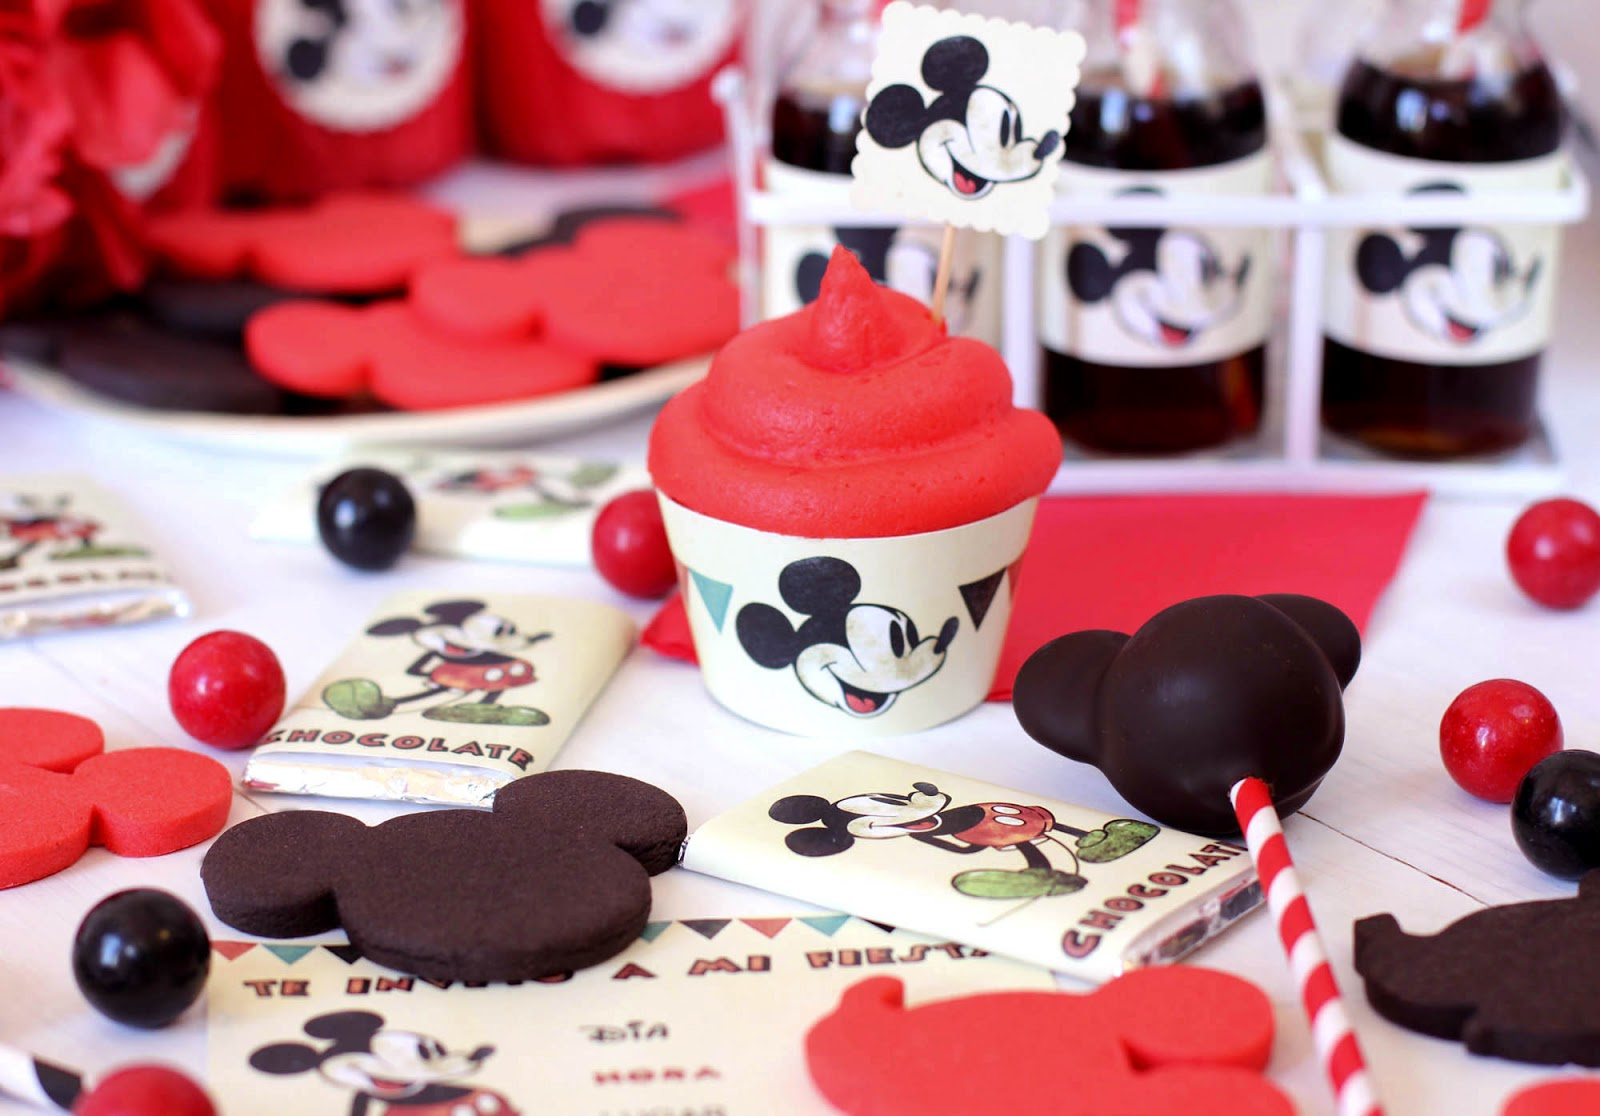 kit festa personalizada mickey mouse festa infantil tag rotulos caixinha papel (5)